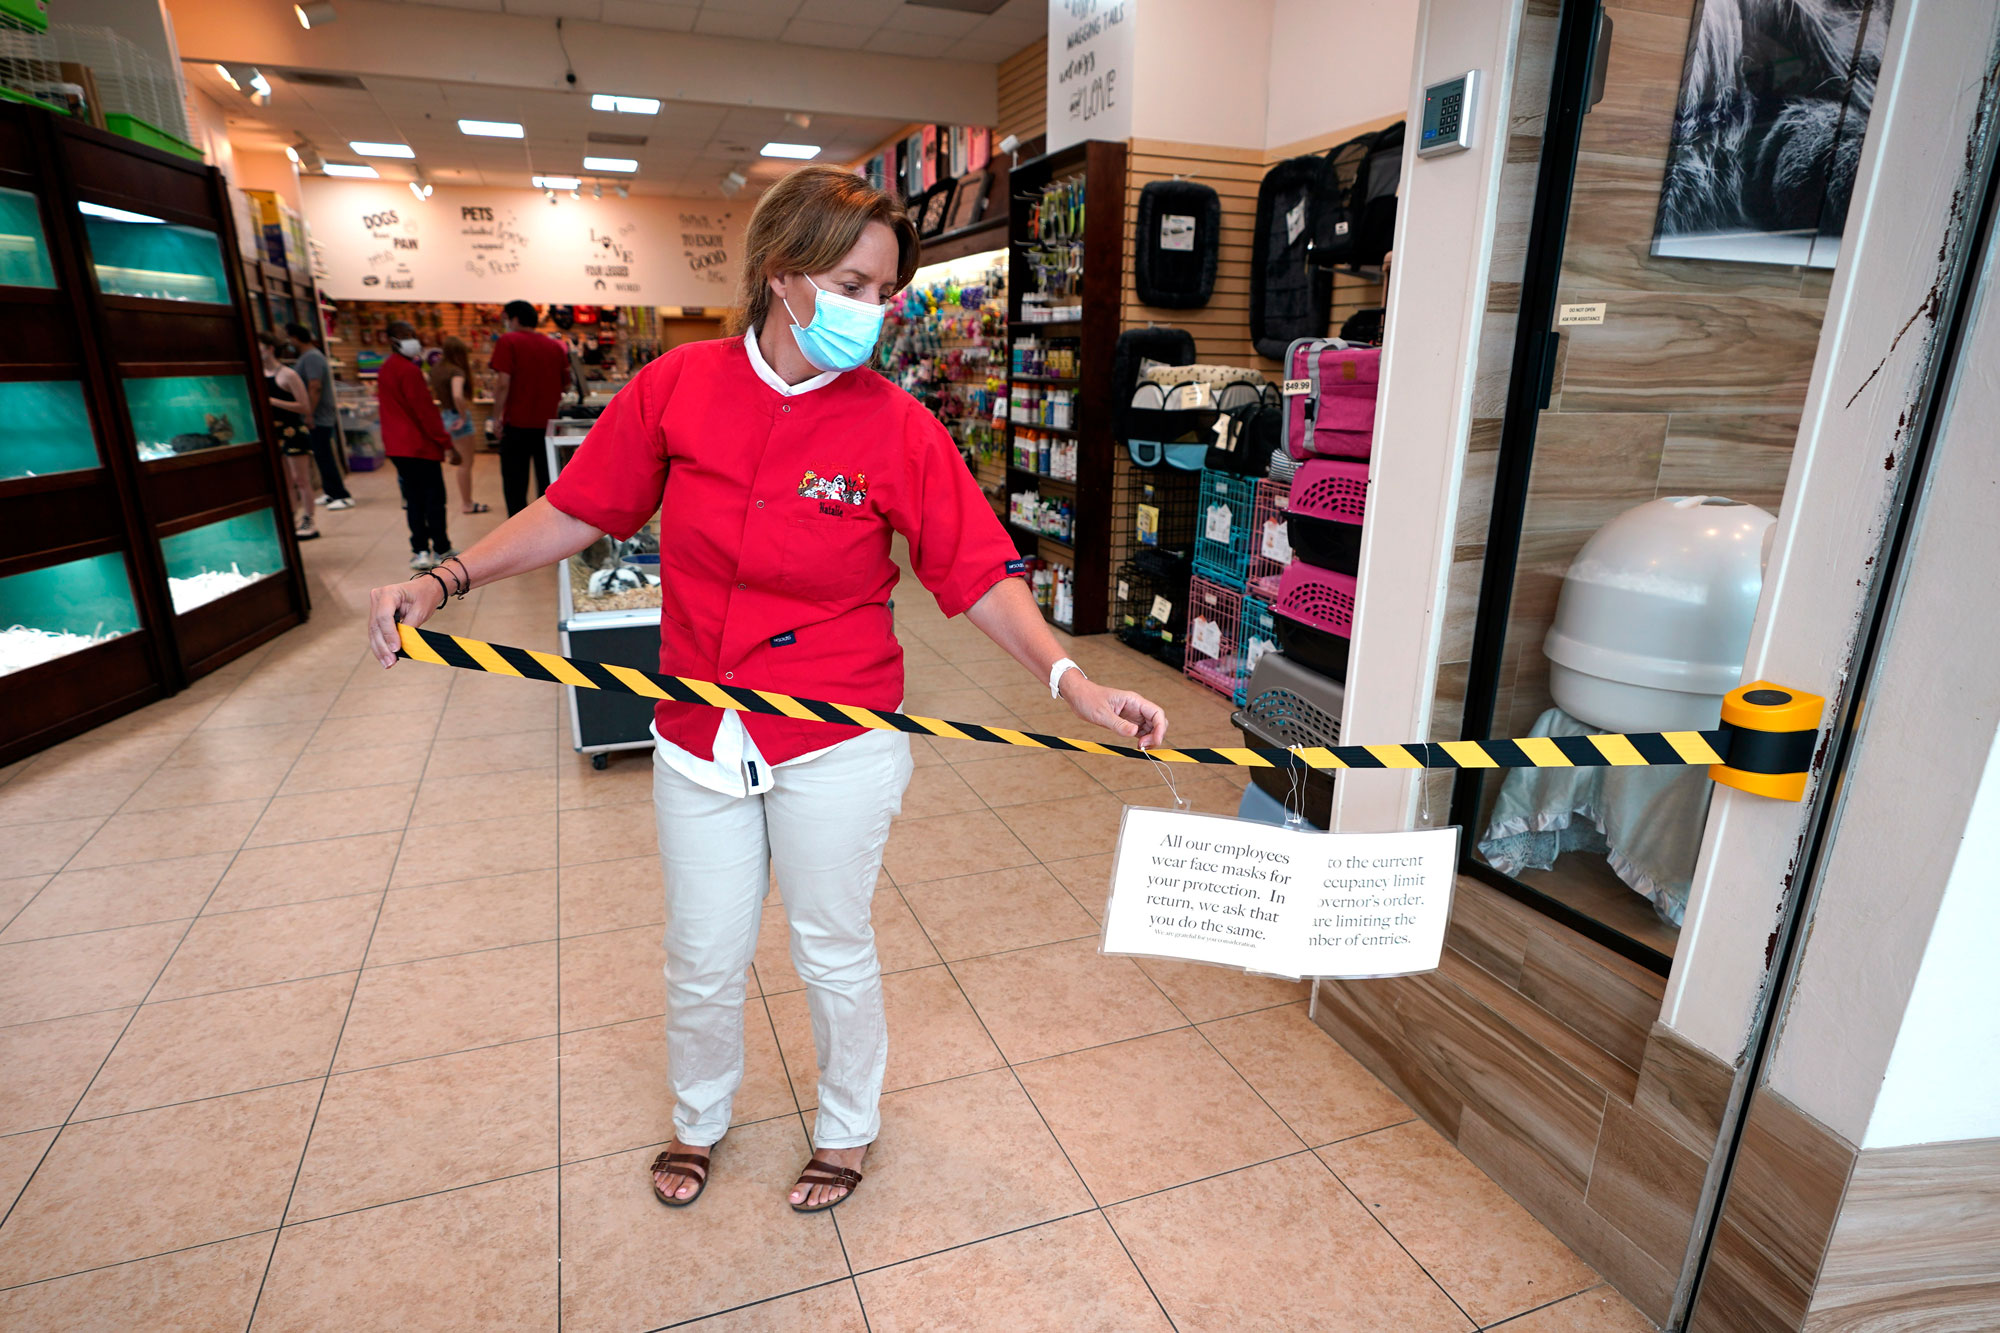 Store manager Natalie Hijazi temporarily closes off the entrance to a Pet Fair store inside The Woodlands Mall on Tuesday, May 5, in The Woodlands, Texas.